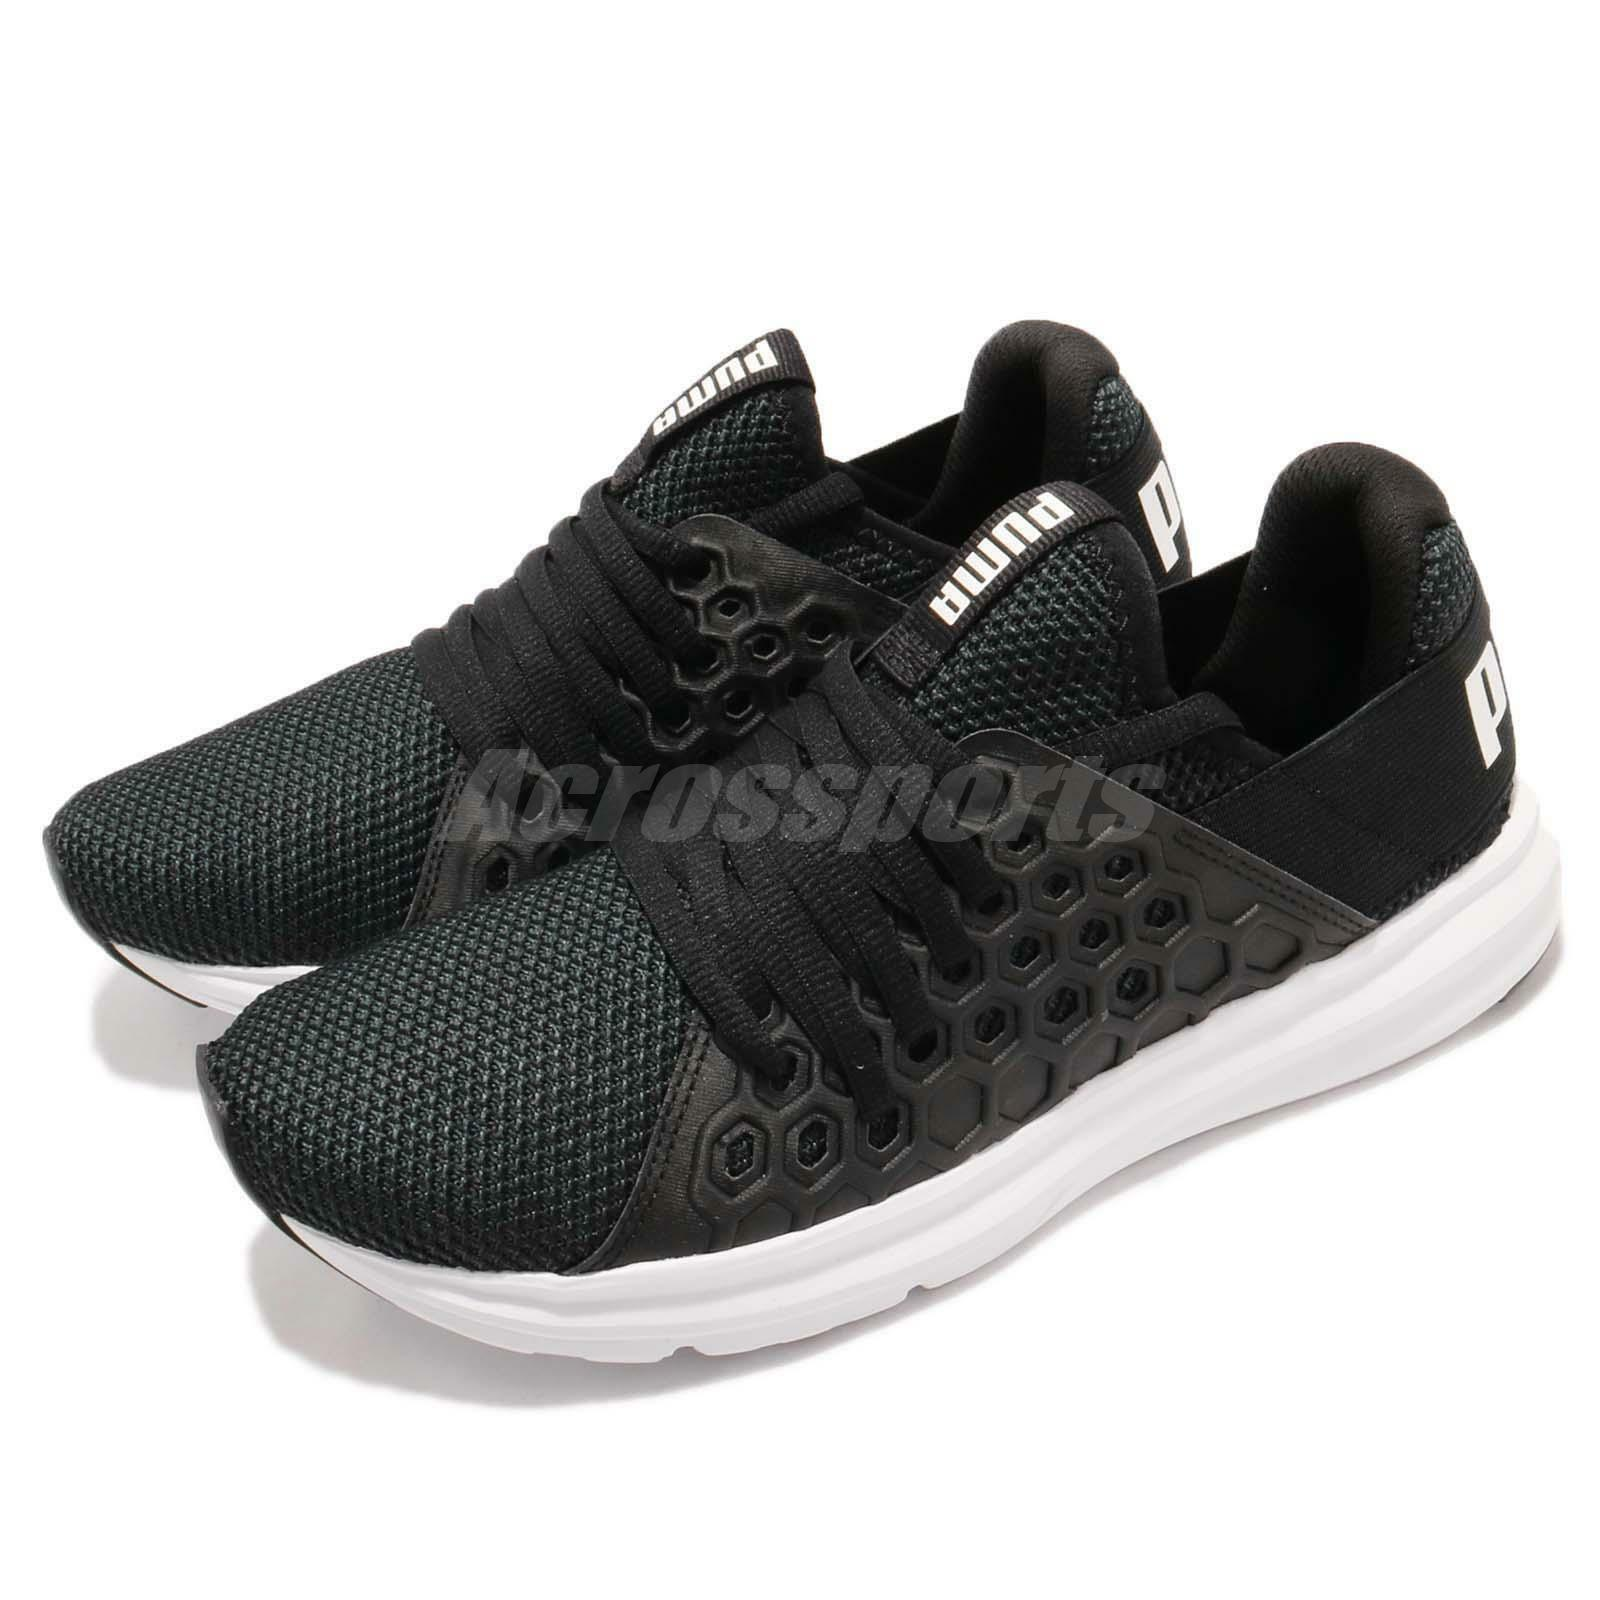 100% authentic 4f87d 78b57 Puma Enzo NF Black White Men Lifestyle Fashion Running Shoes Shoes Shoes  Sneakers 190932-01